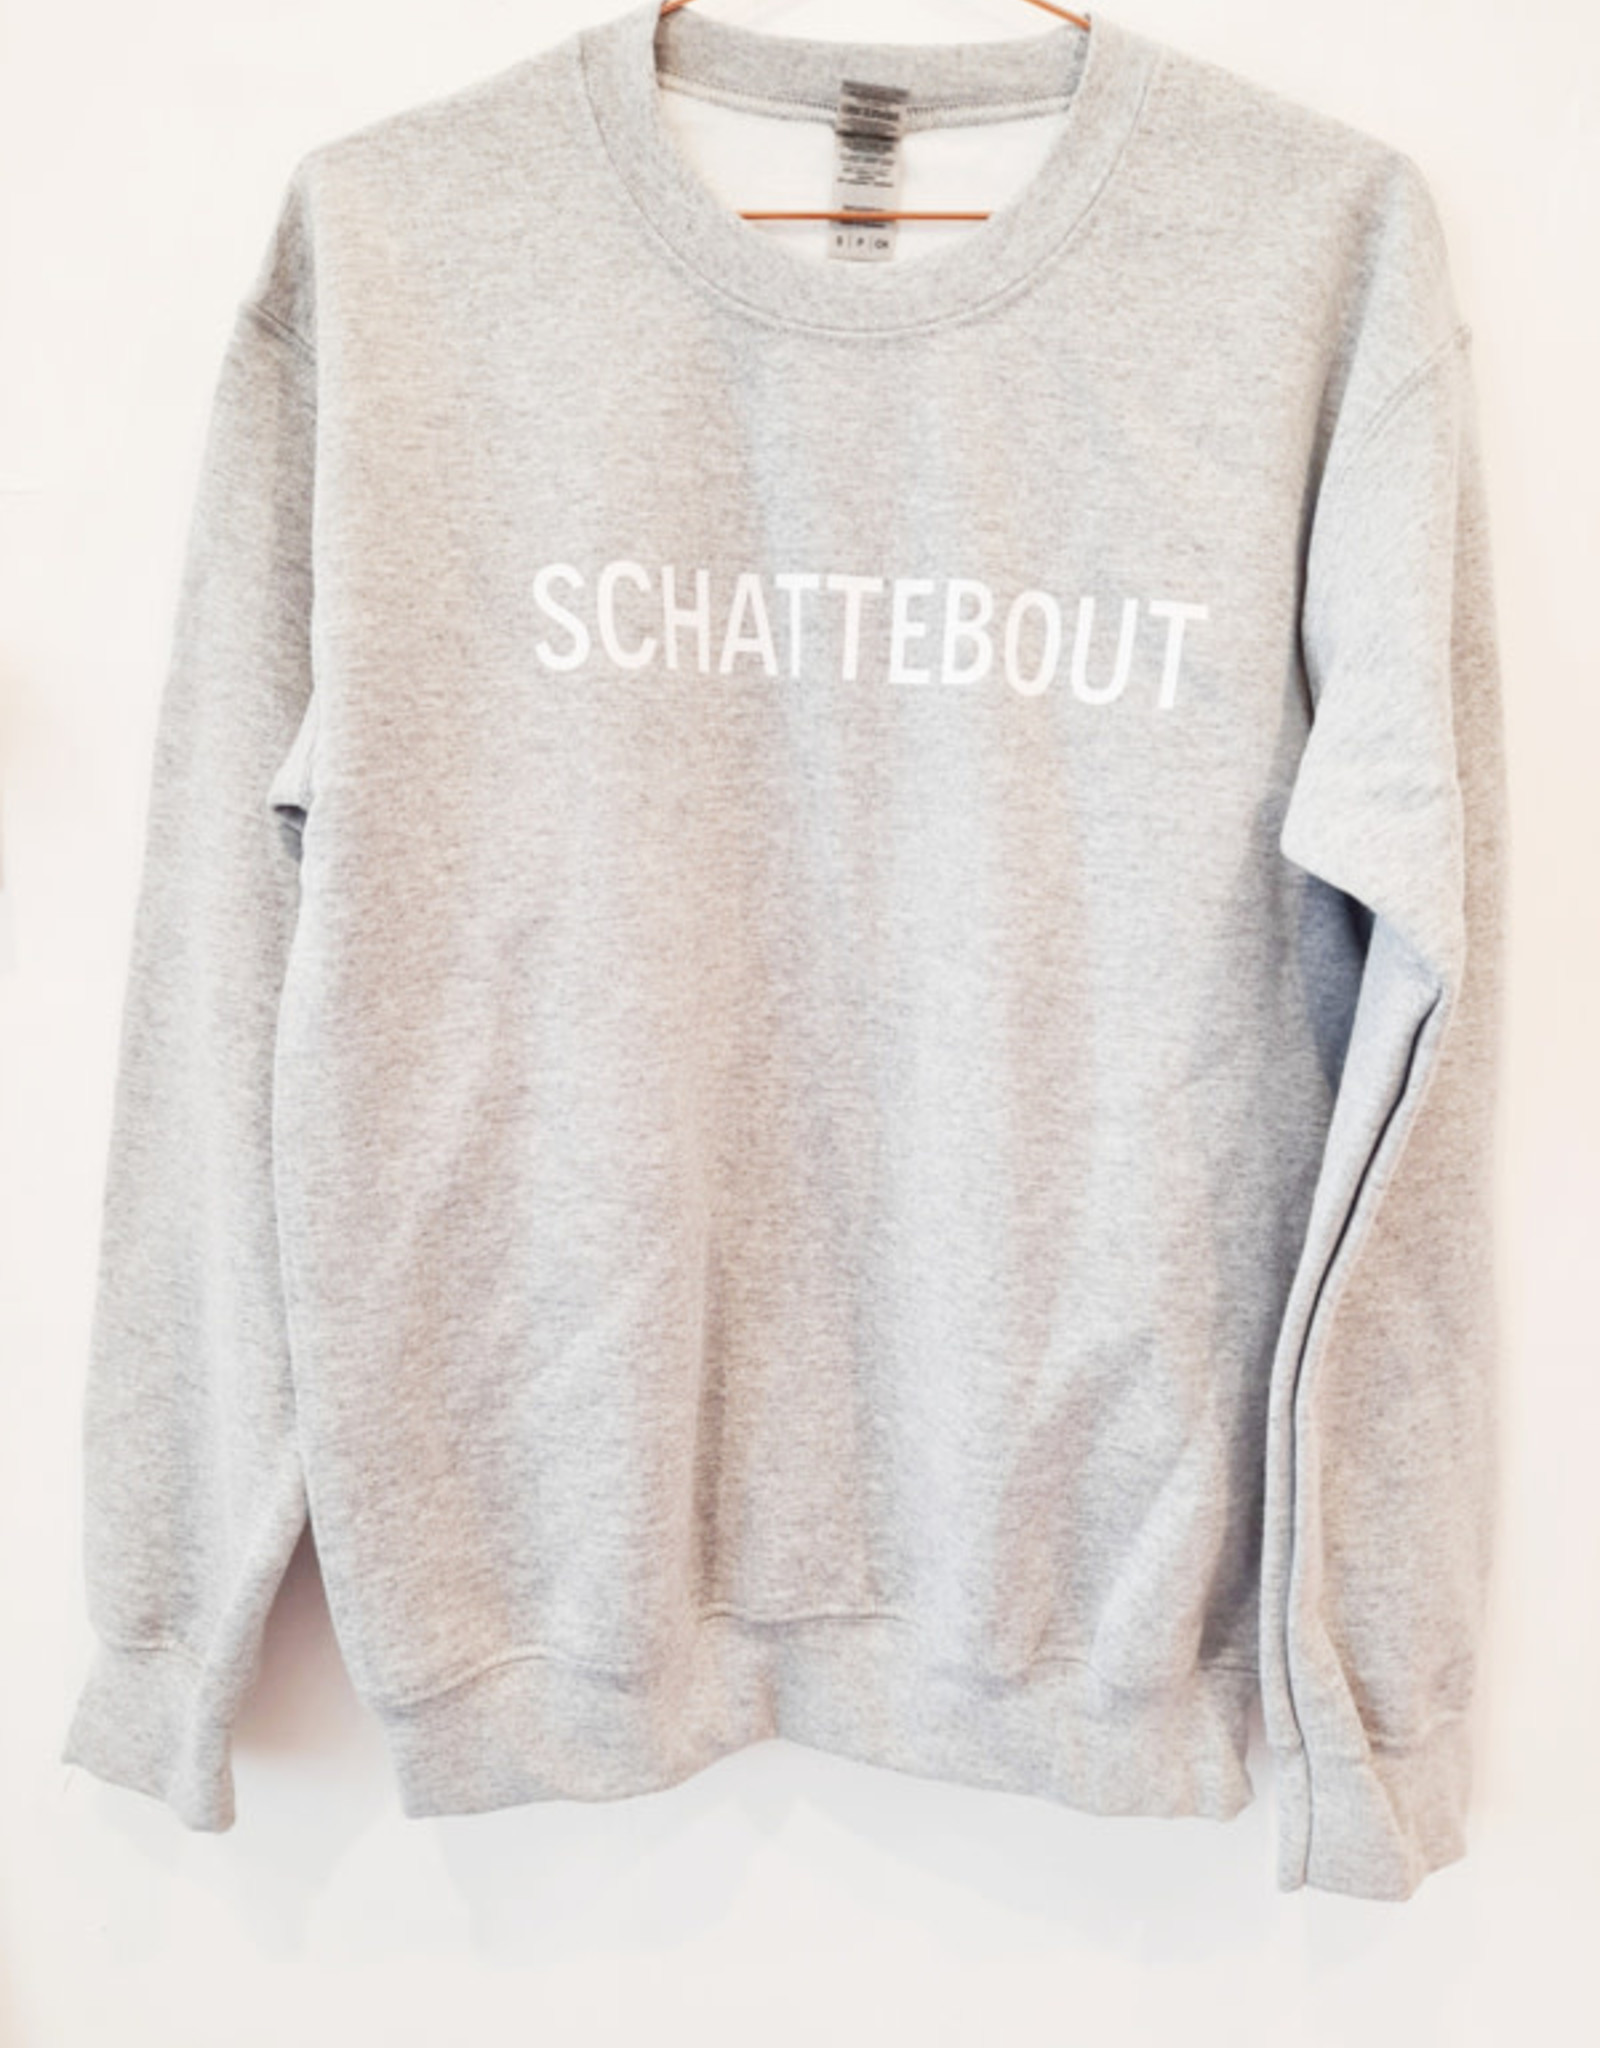 Schattebout sweater